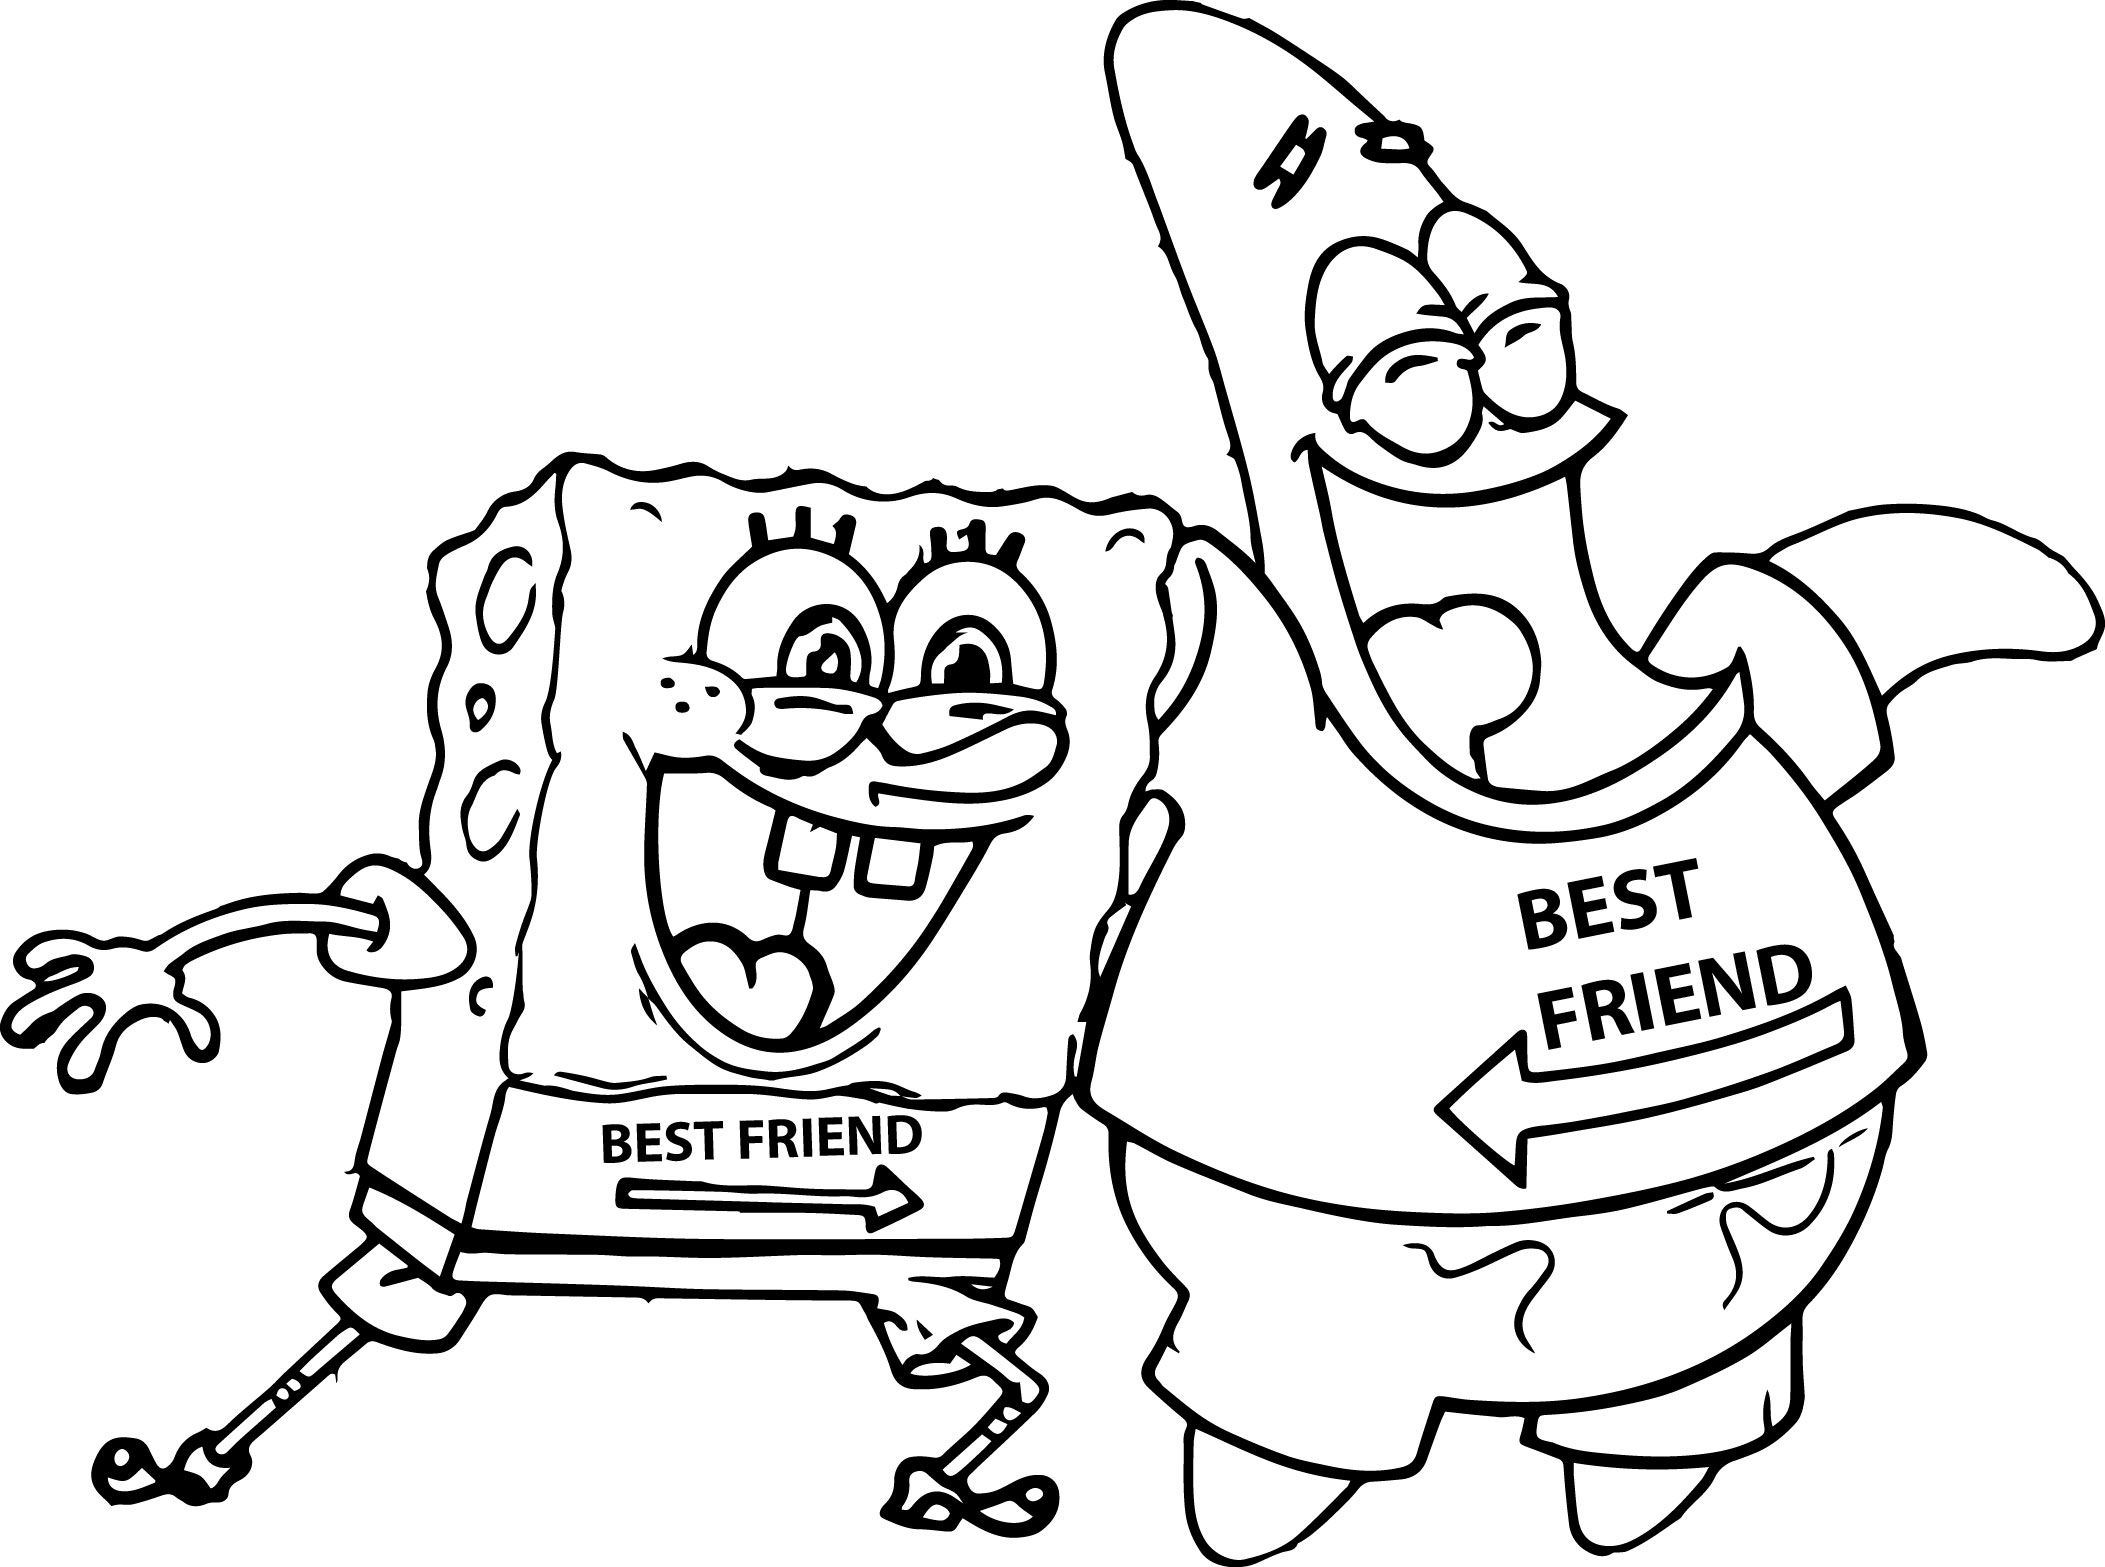 friendship coloring pages best friend coloring pages to download and print for free friendship coloring pages